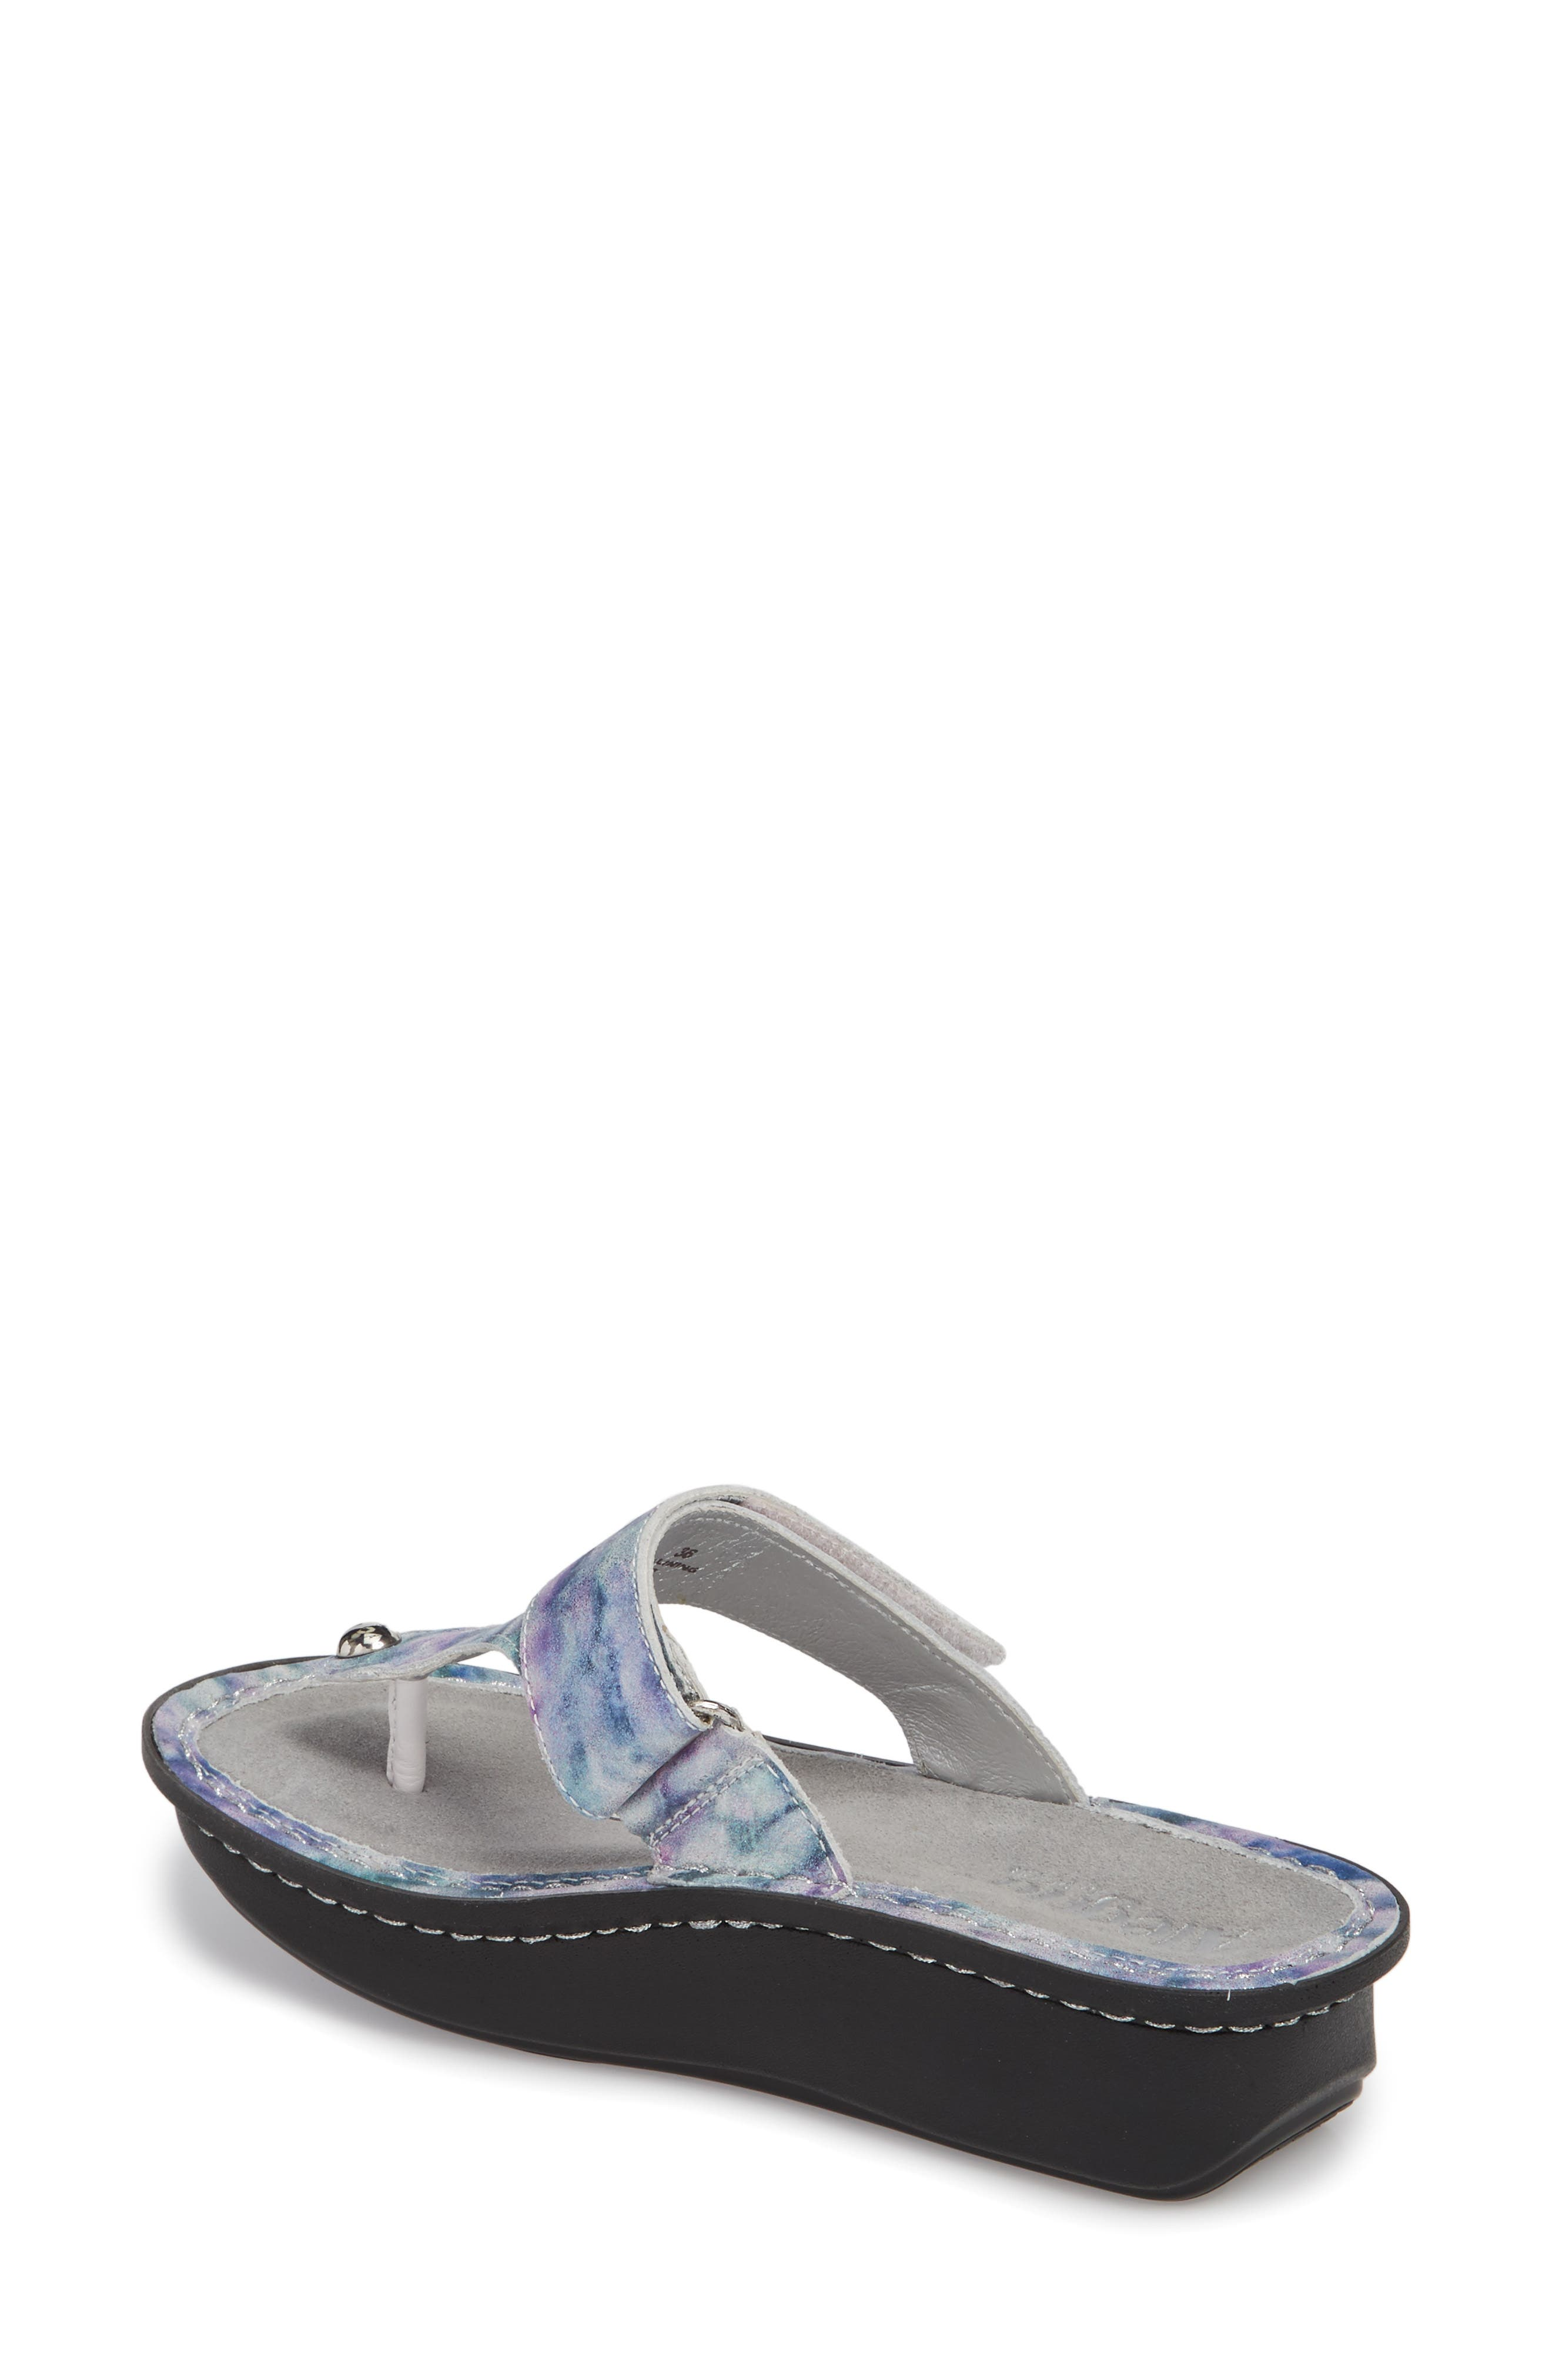 'Carina' Sandal,                             Alternate thumbnail 2, color,                             Mellow Out Leather